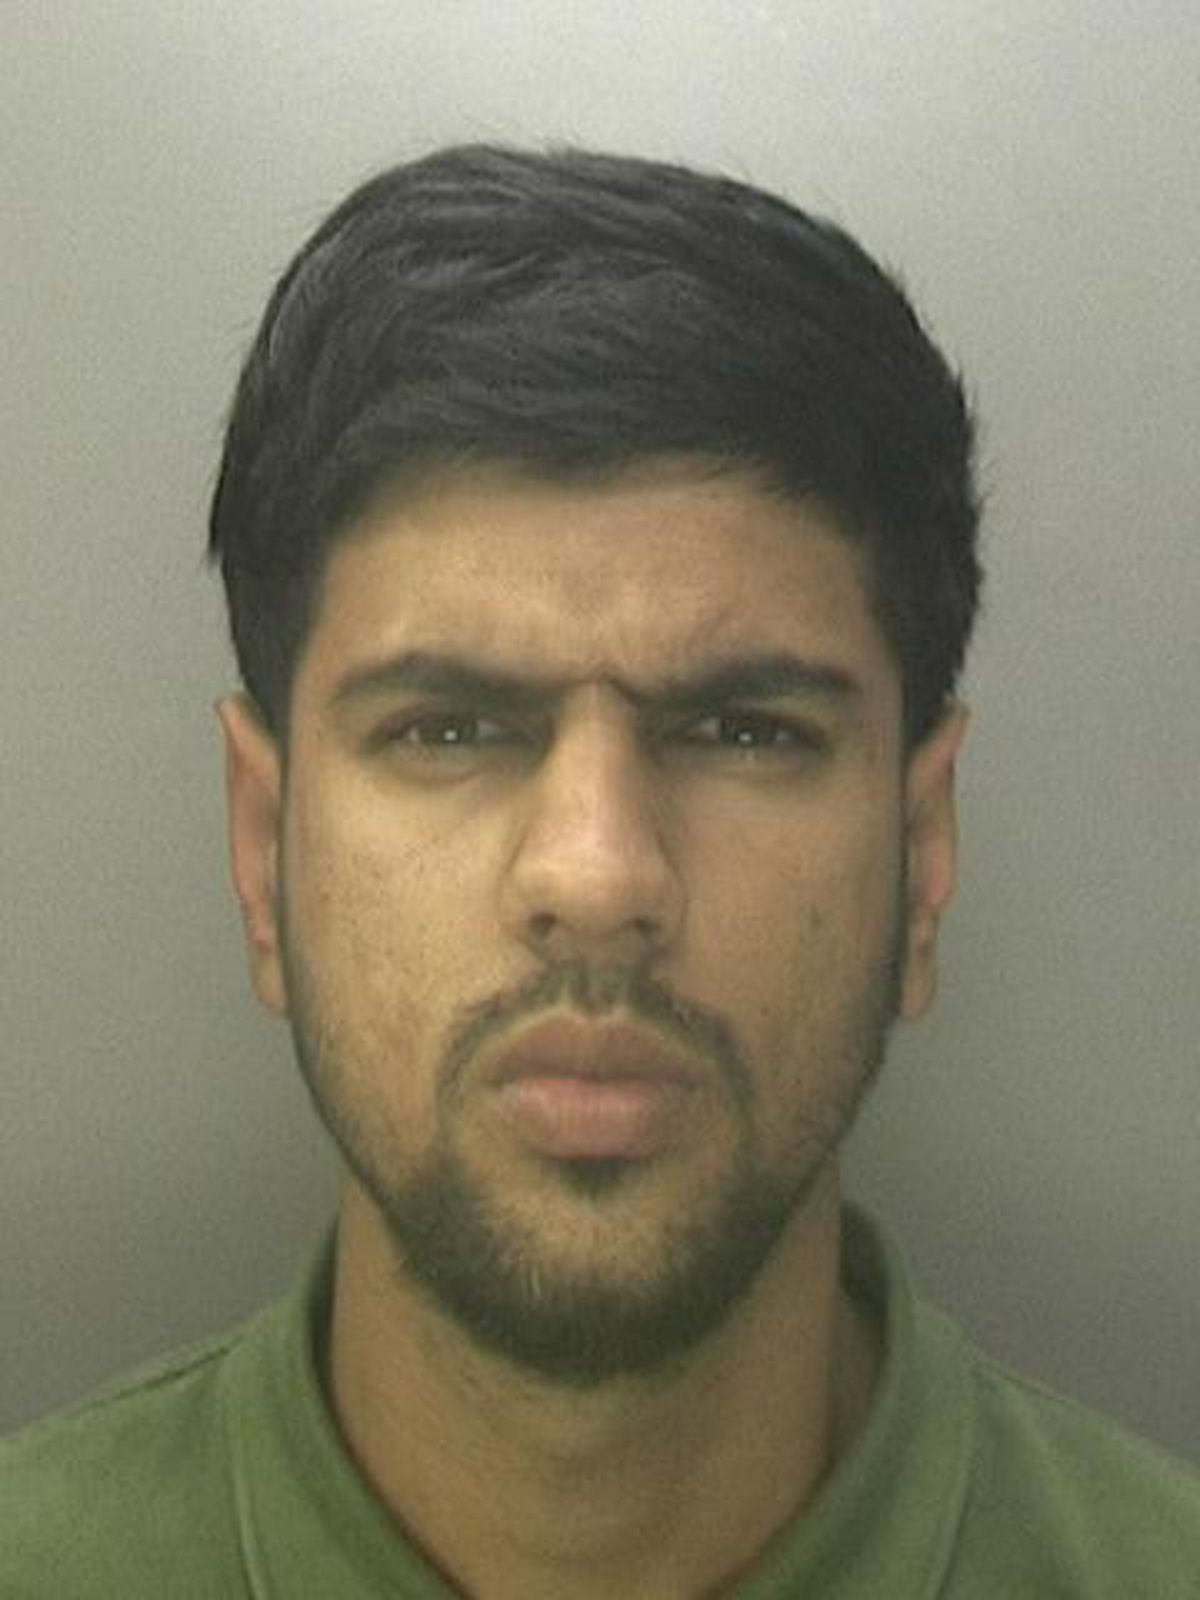 Aqeel Hussain was locked up for two years and three months after pleading guilty to two counts of burglary and an attempted burglary.